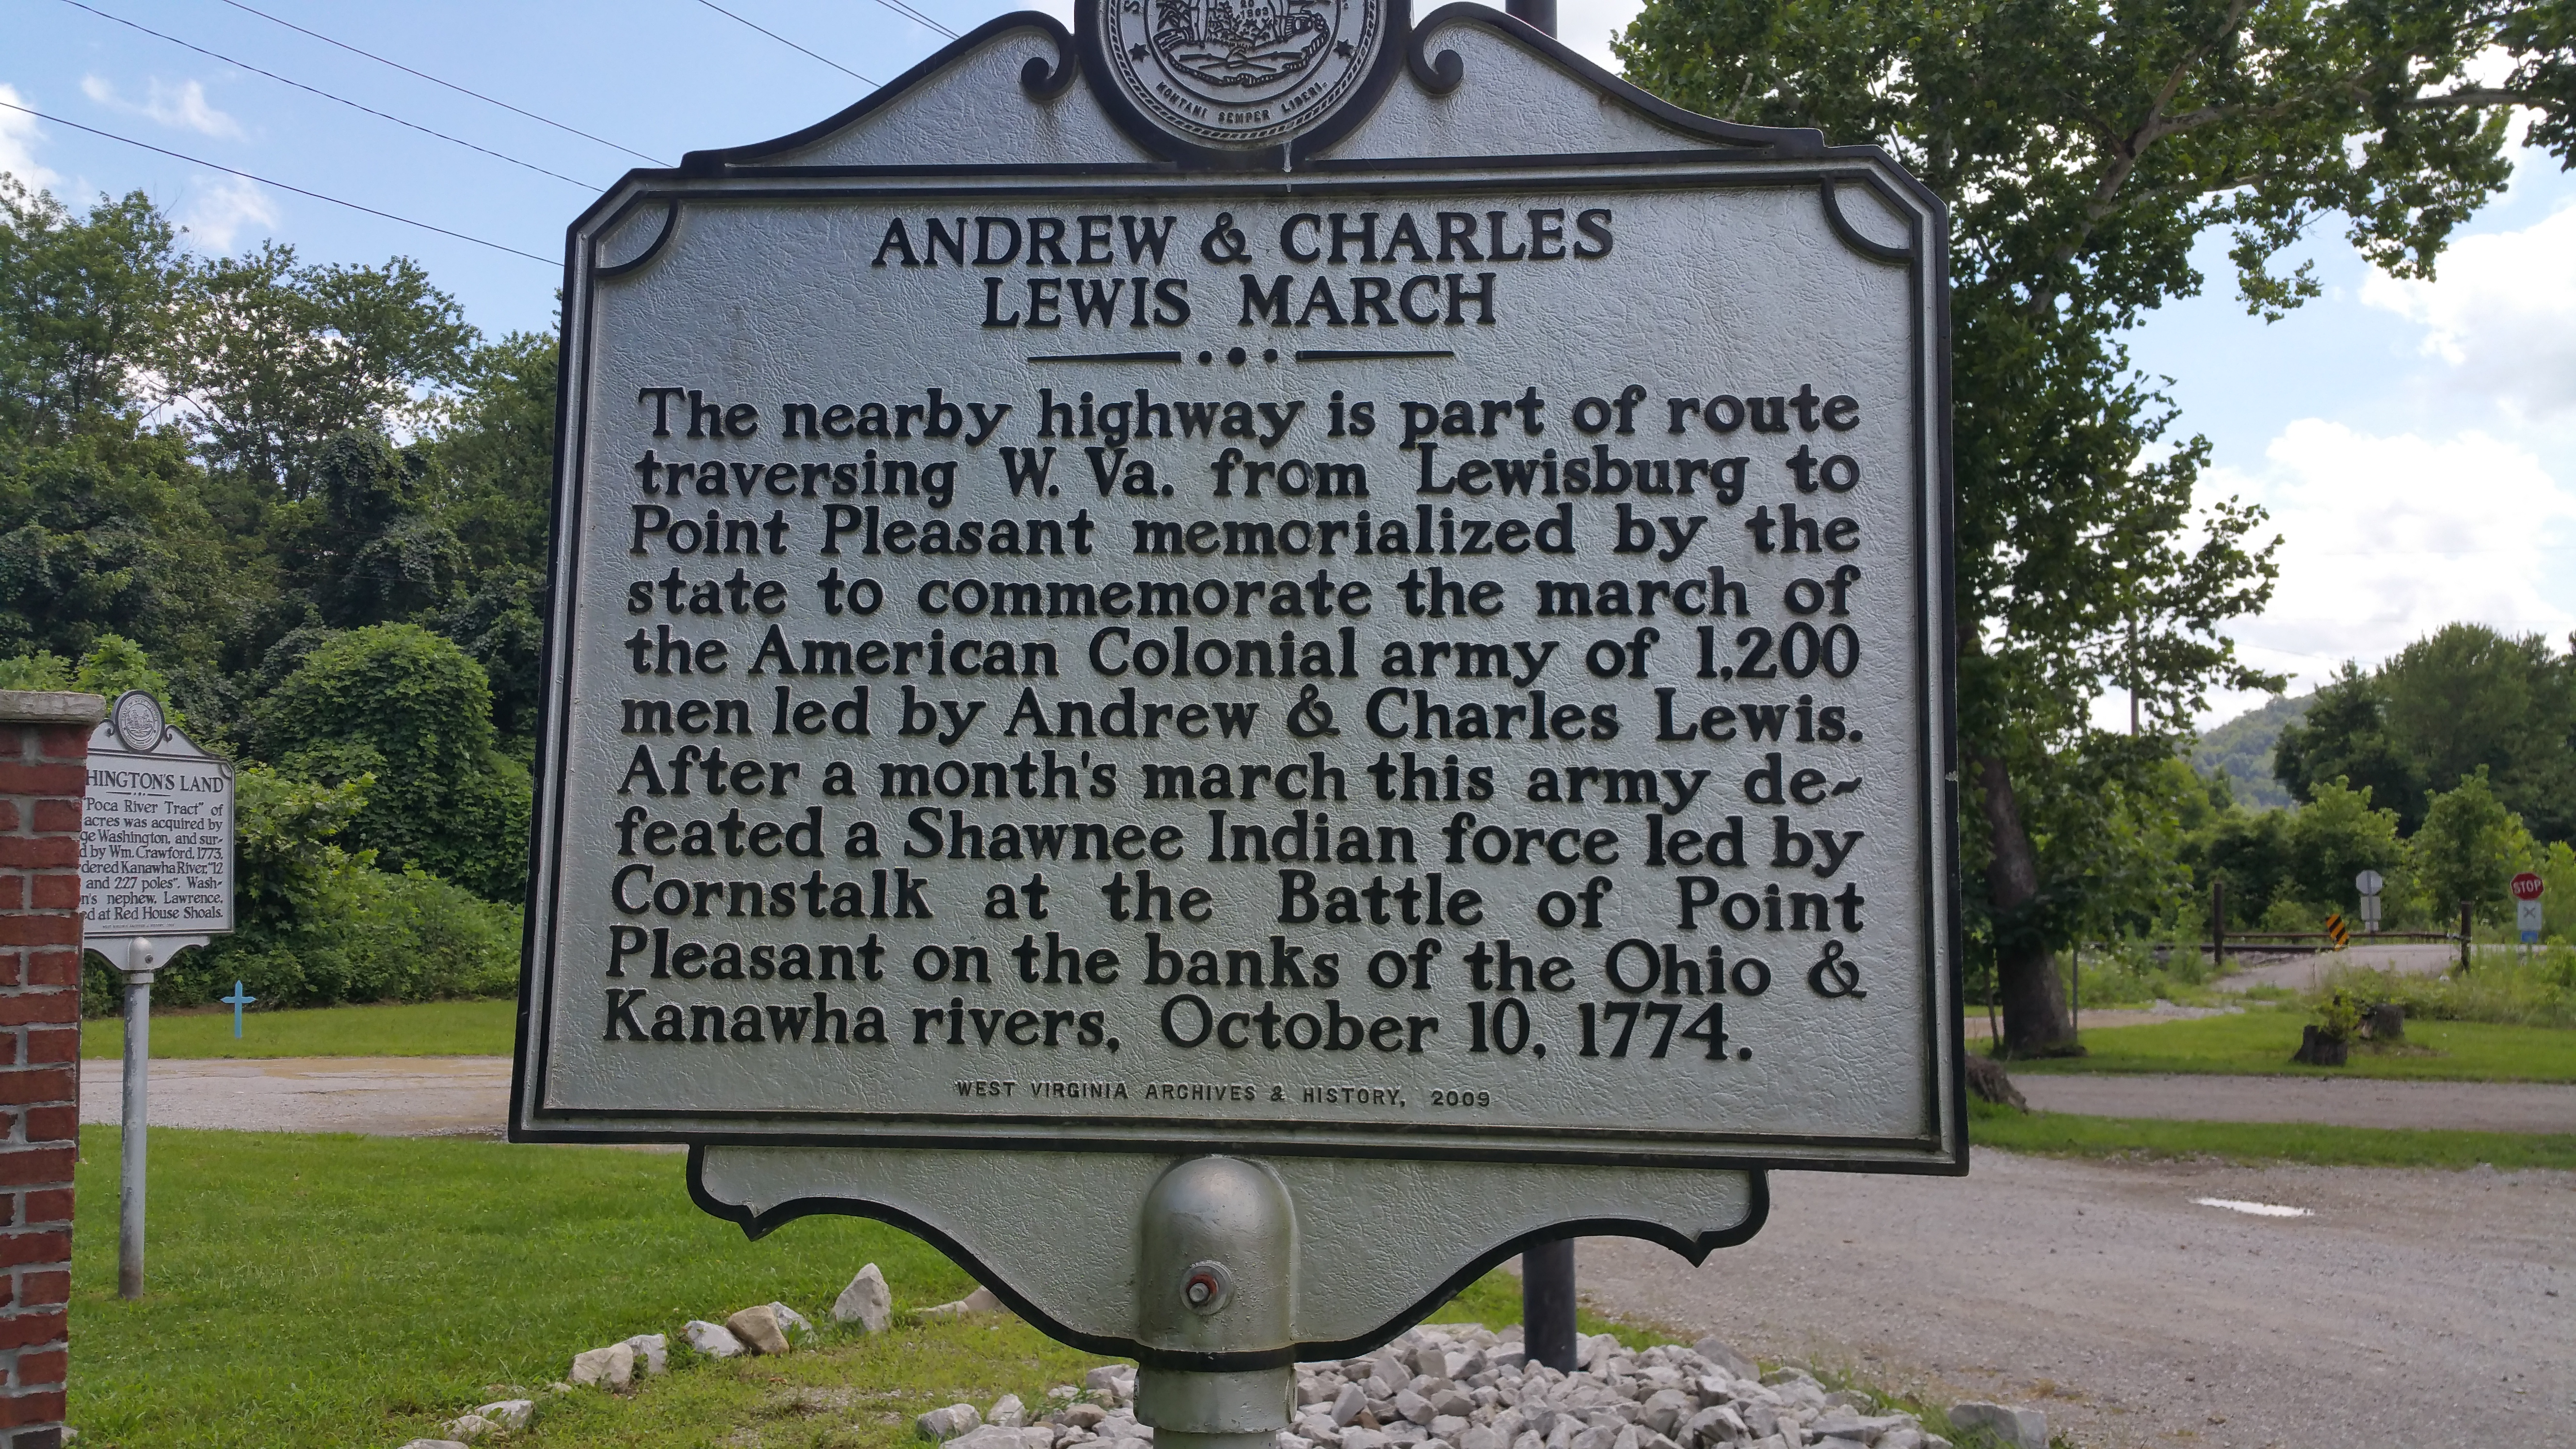 The historical marker in Hometown, West Virginia